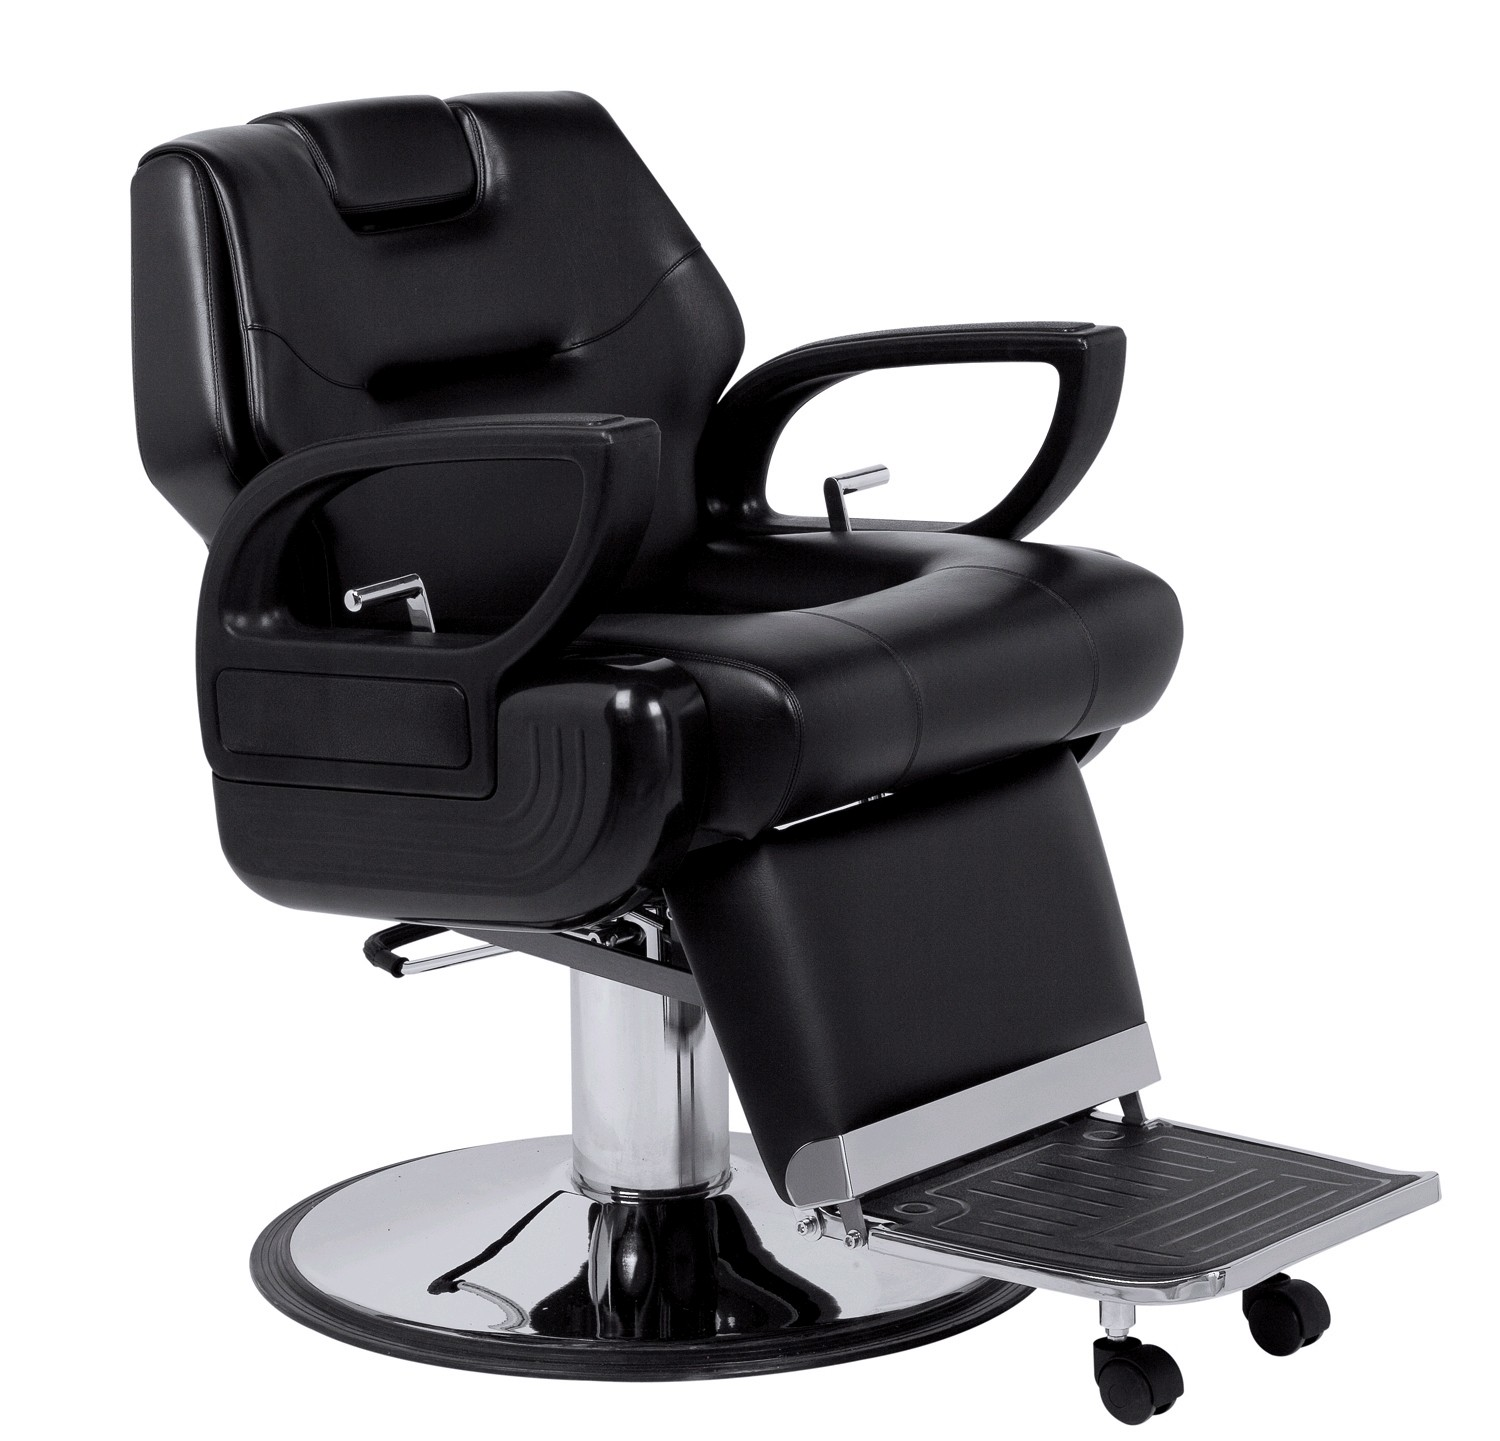 SAVVY 001-B BARBER CHAIR With Head Rest